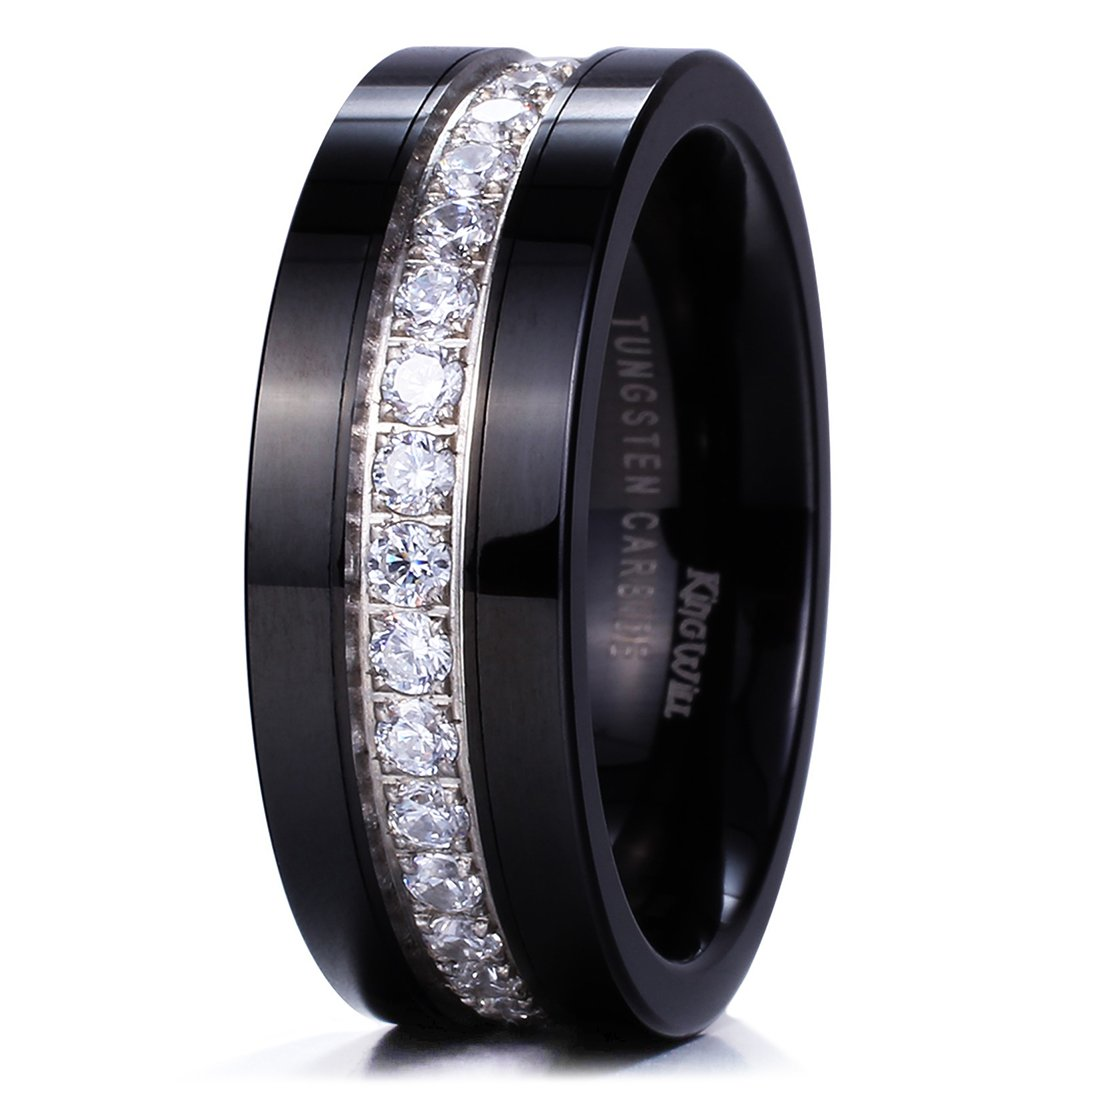 King Will GEM Mens 8mm Black Polished Finish Tungsten Carbide Ring Cubic Zircon Stones Flat Style Wedding Band(10.5)